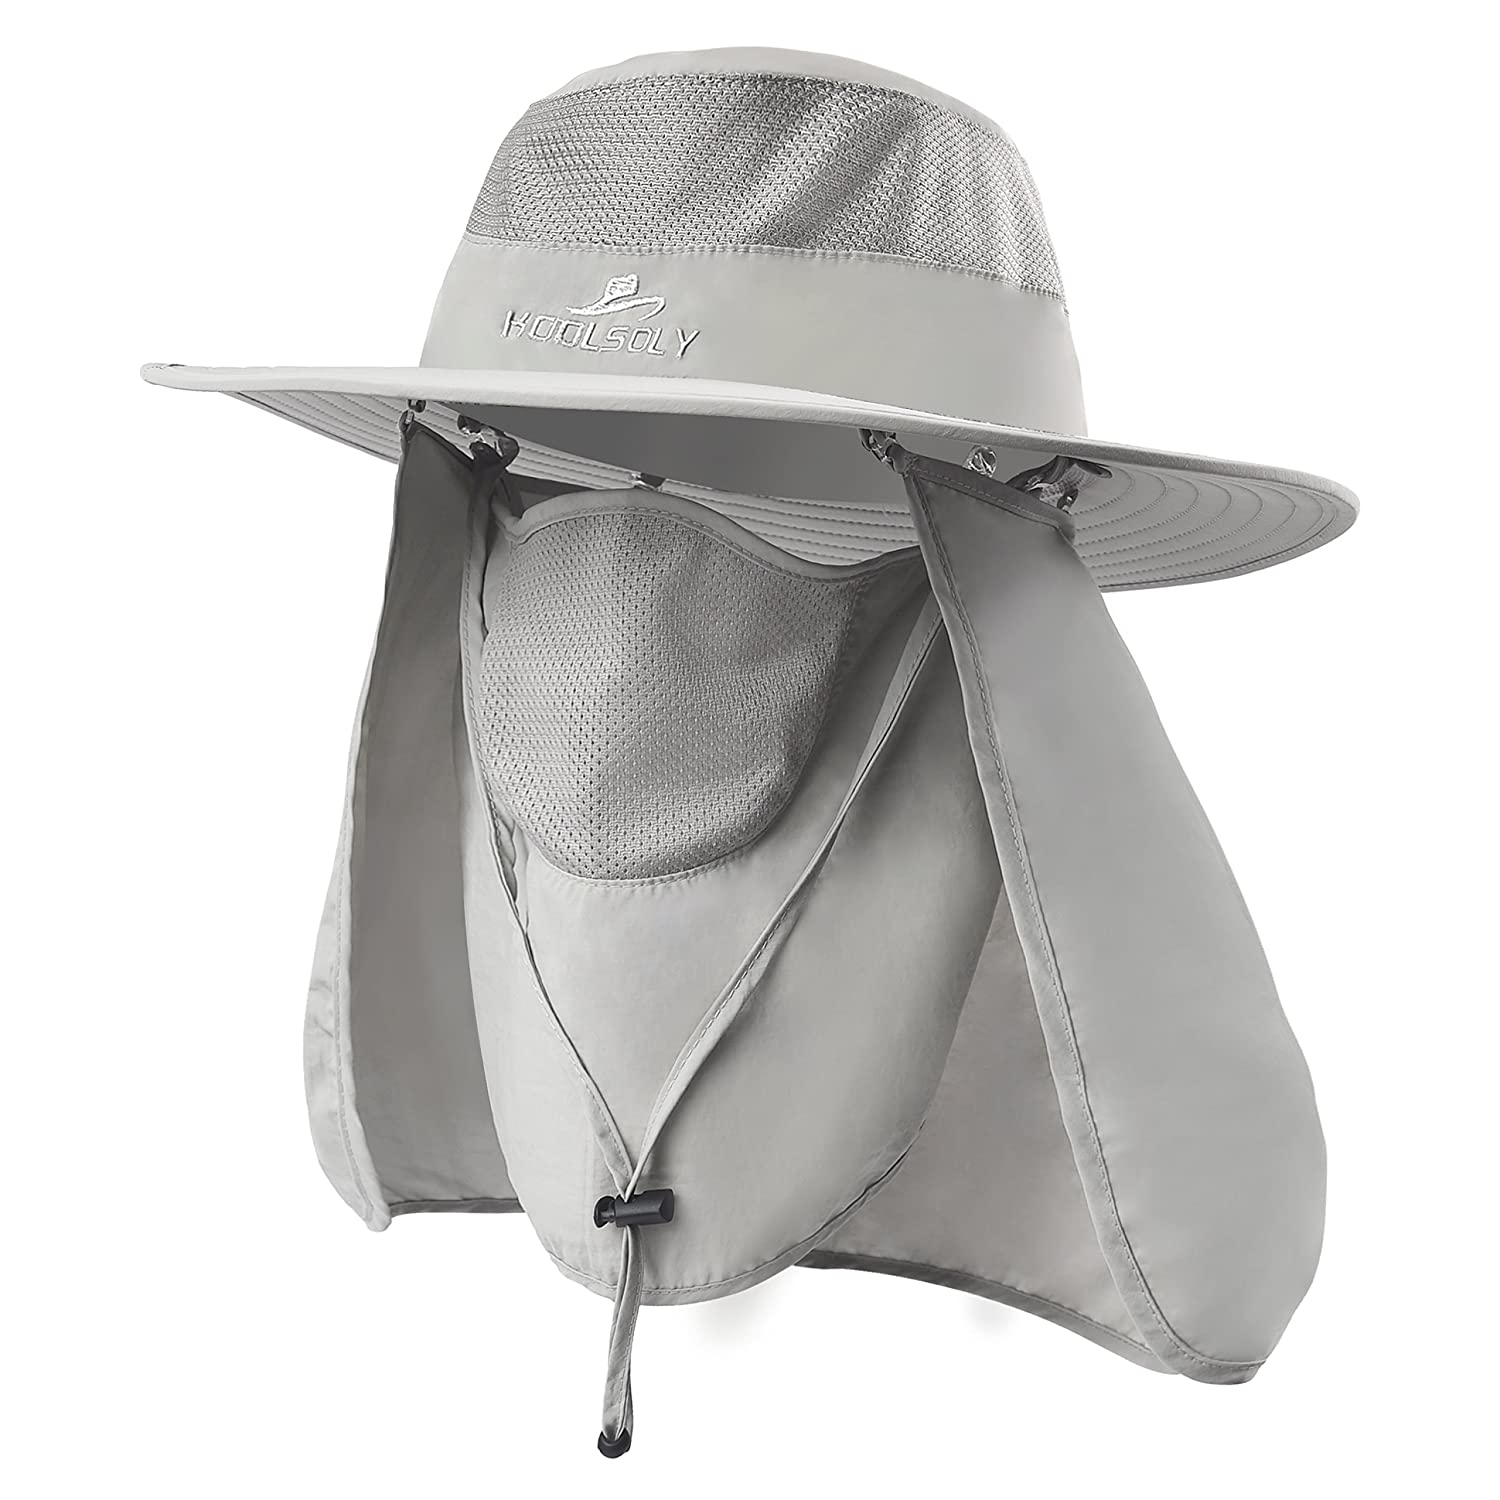 KOOLSOLY Outdoor Sun Cap for Men Women,Fishing Hat UPF 50+ UV Sun Protection with Removable Neck Flap, Face Cover Mask & Windproof Strip, Sun Hat for Outdoor Sports & Travel